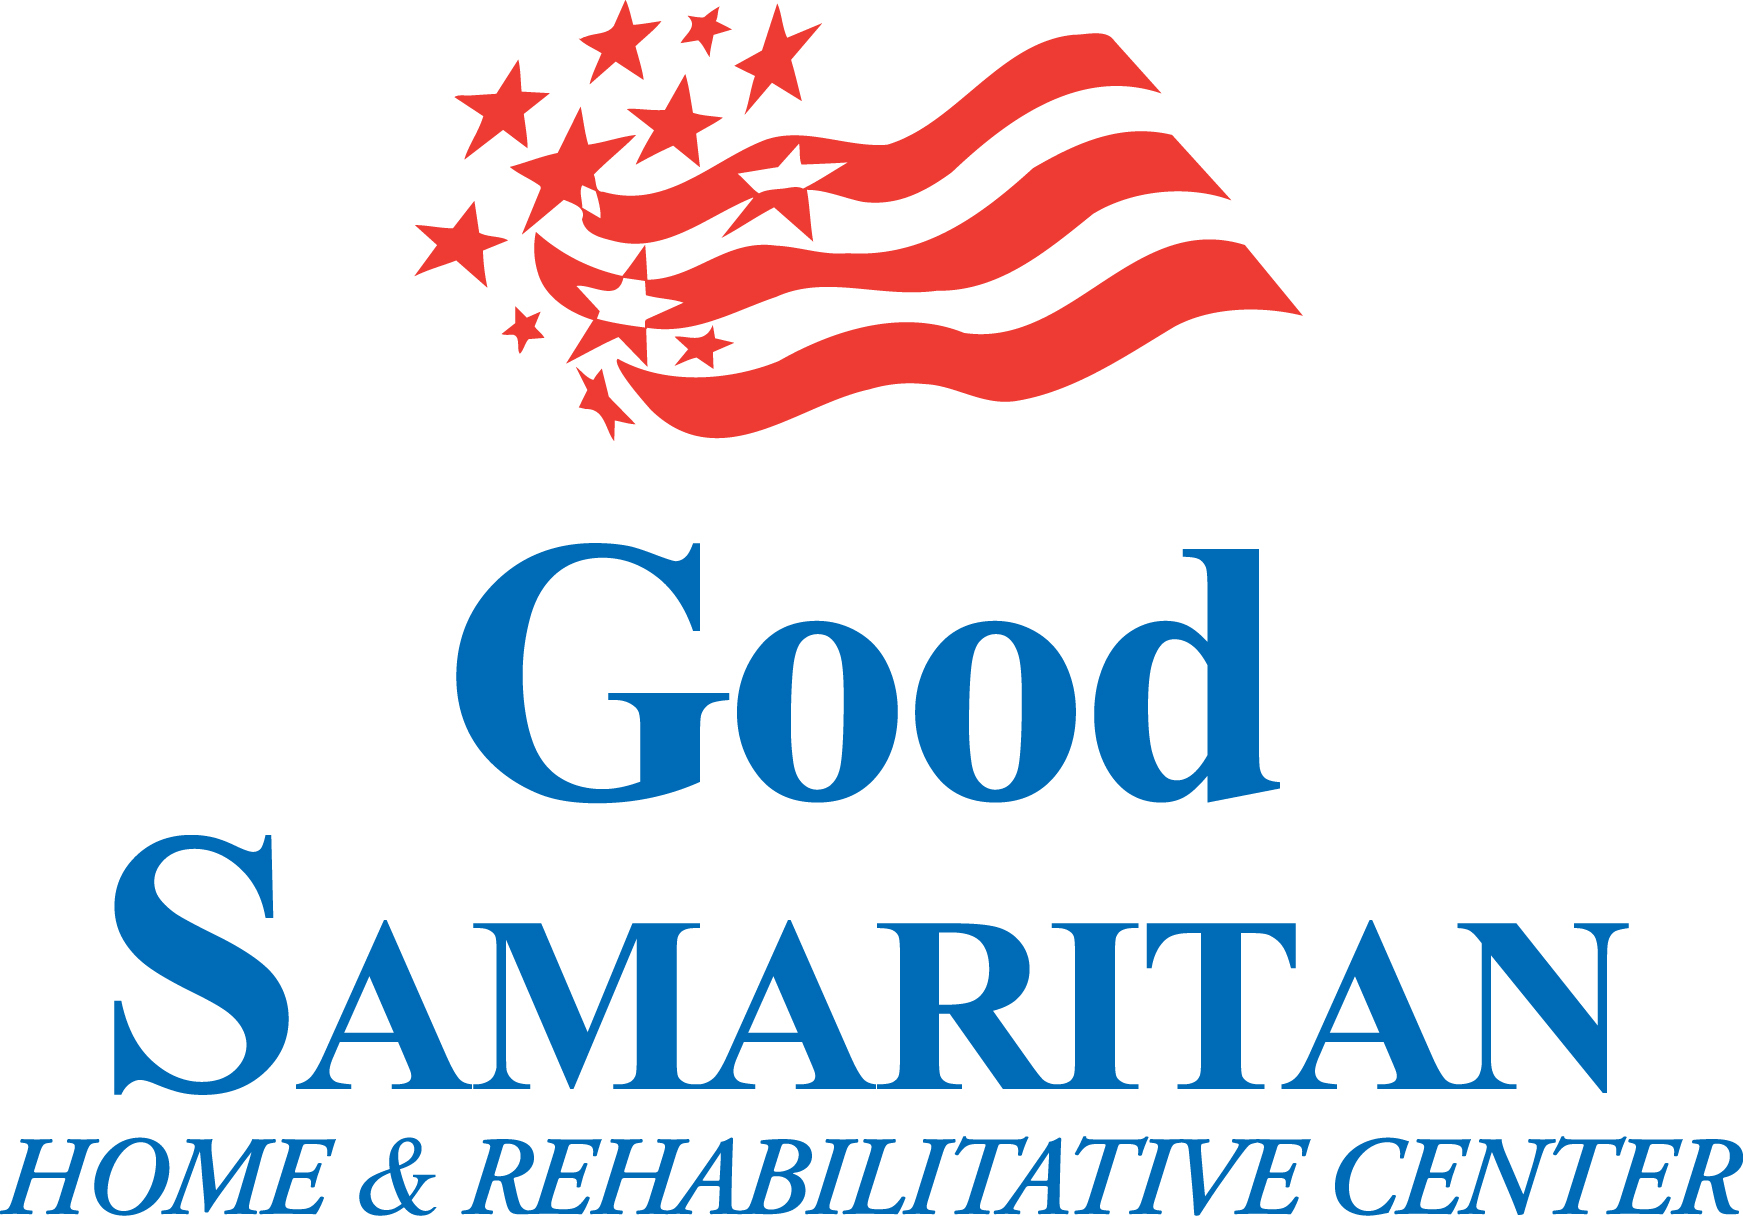 Good Samaritan Home and Rehabilitative Center